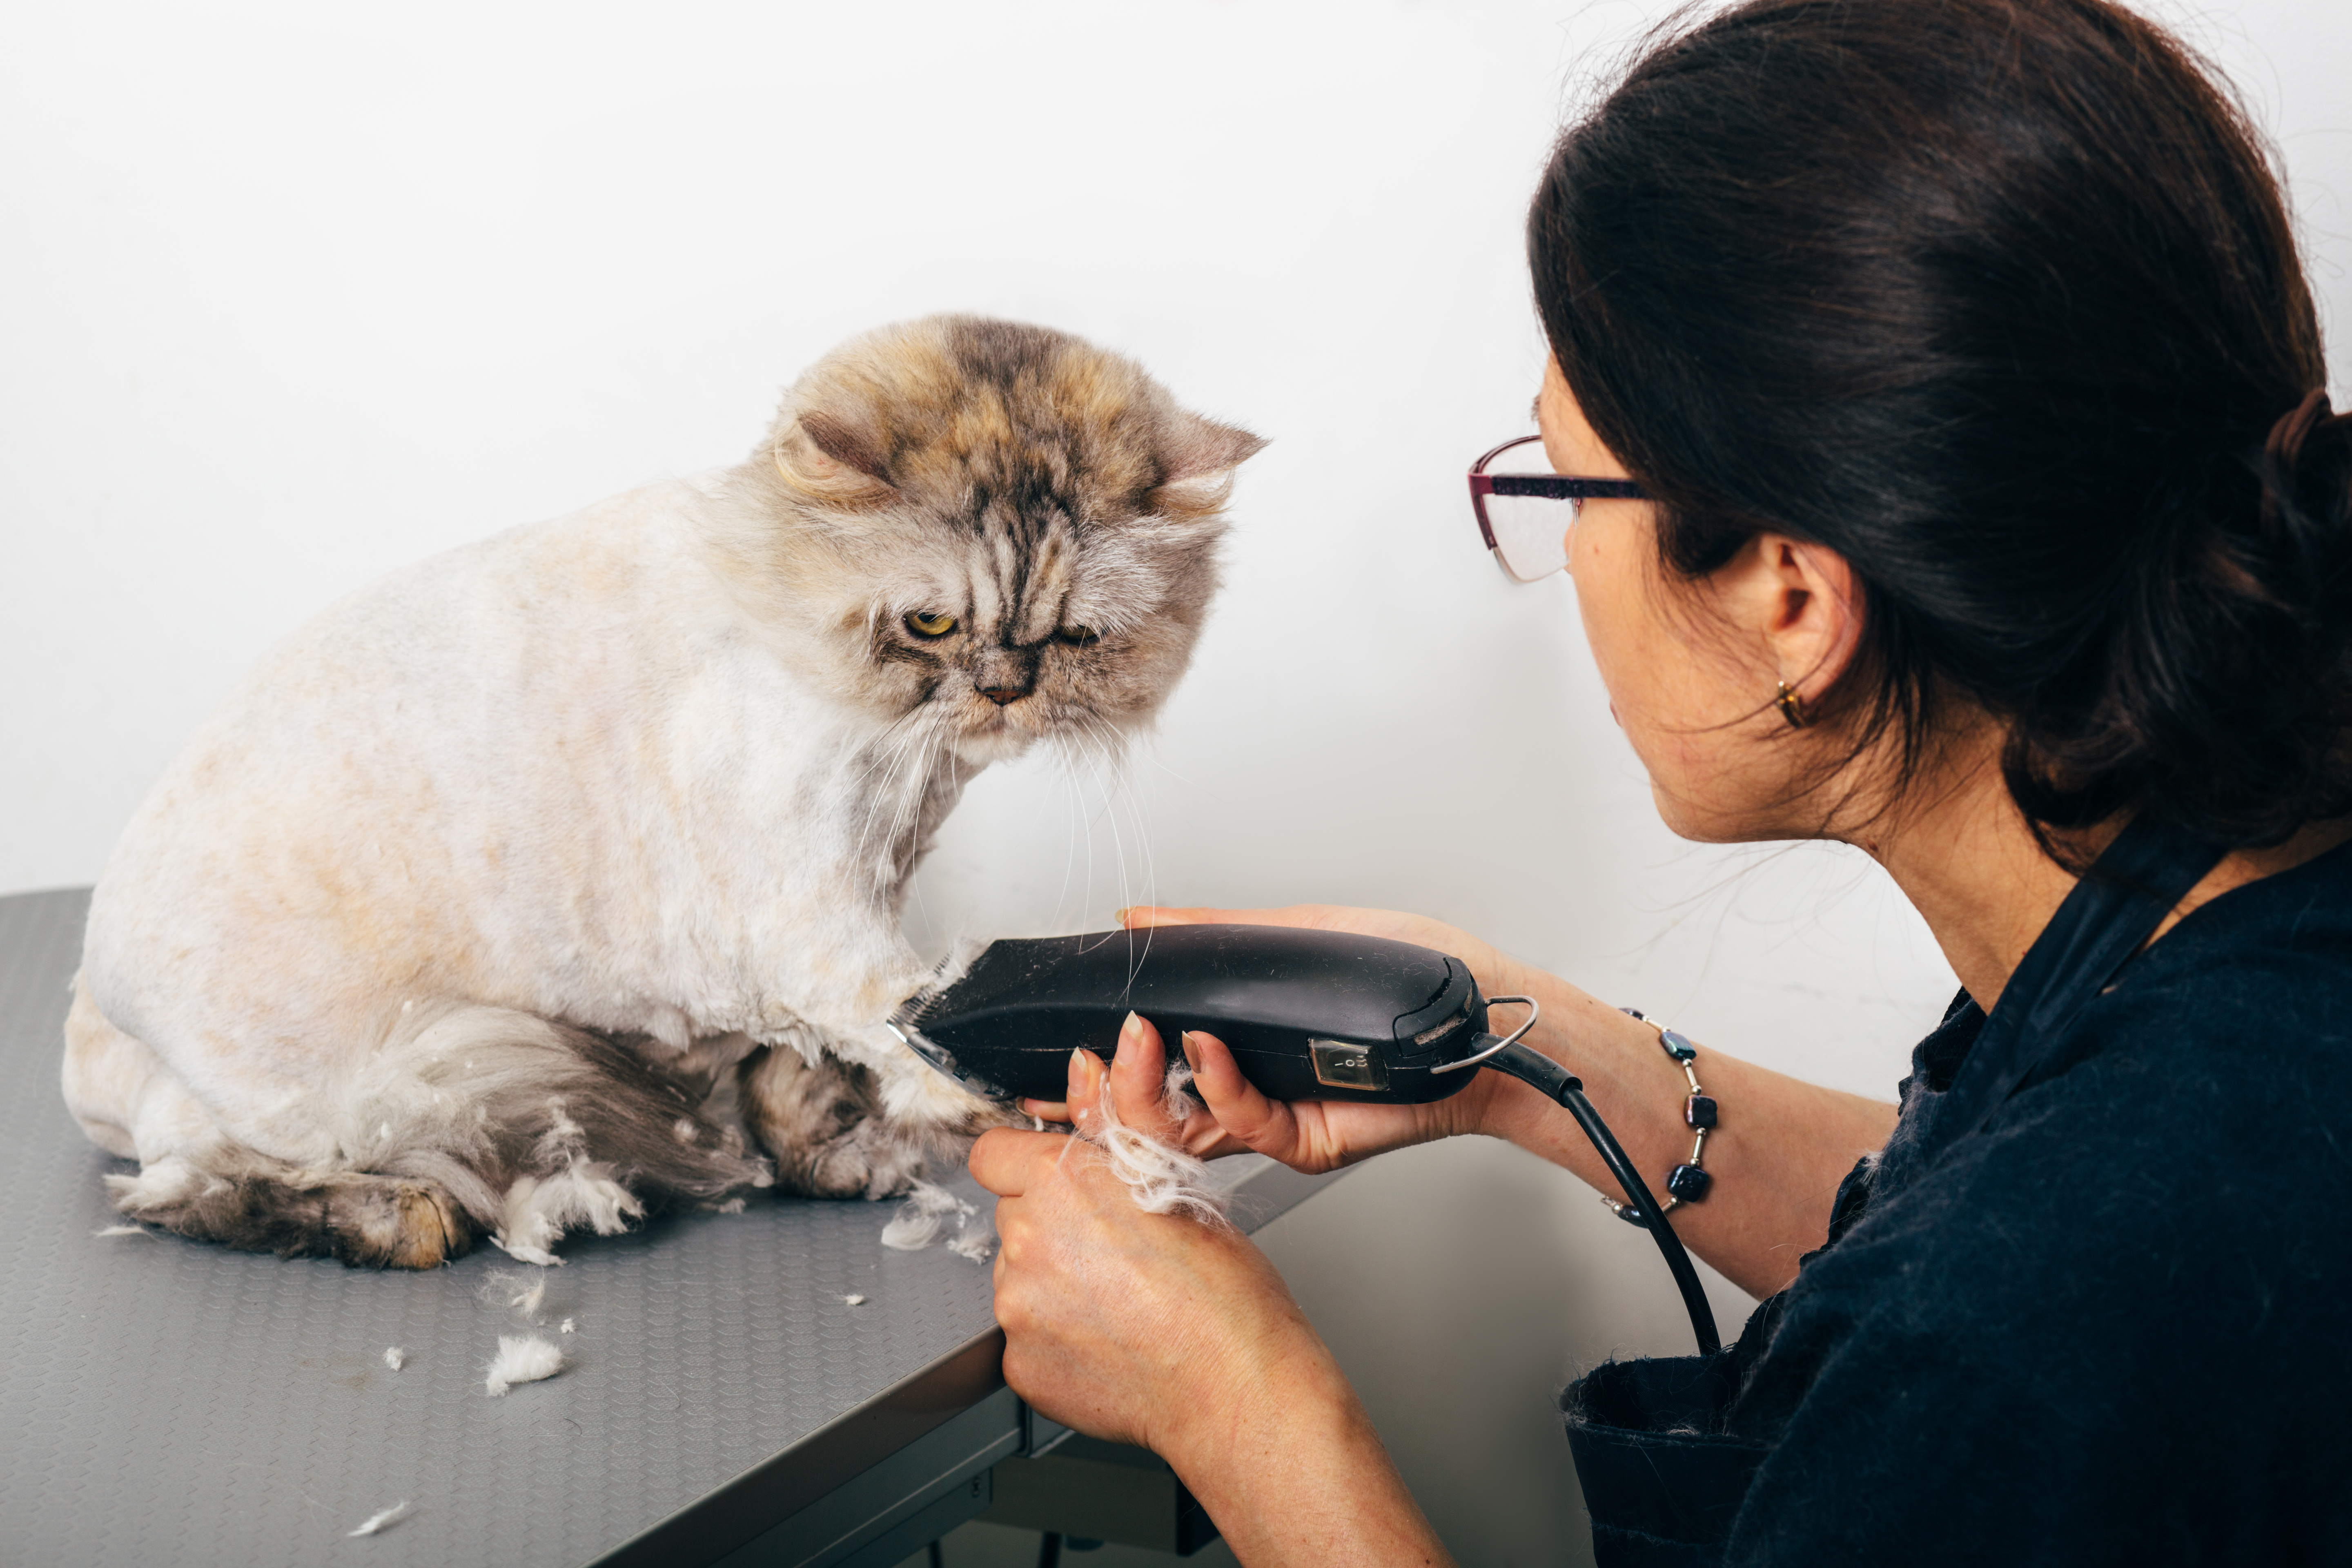 How to Sedate a Cat for Grooming | Cuteness